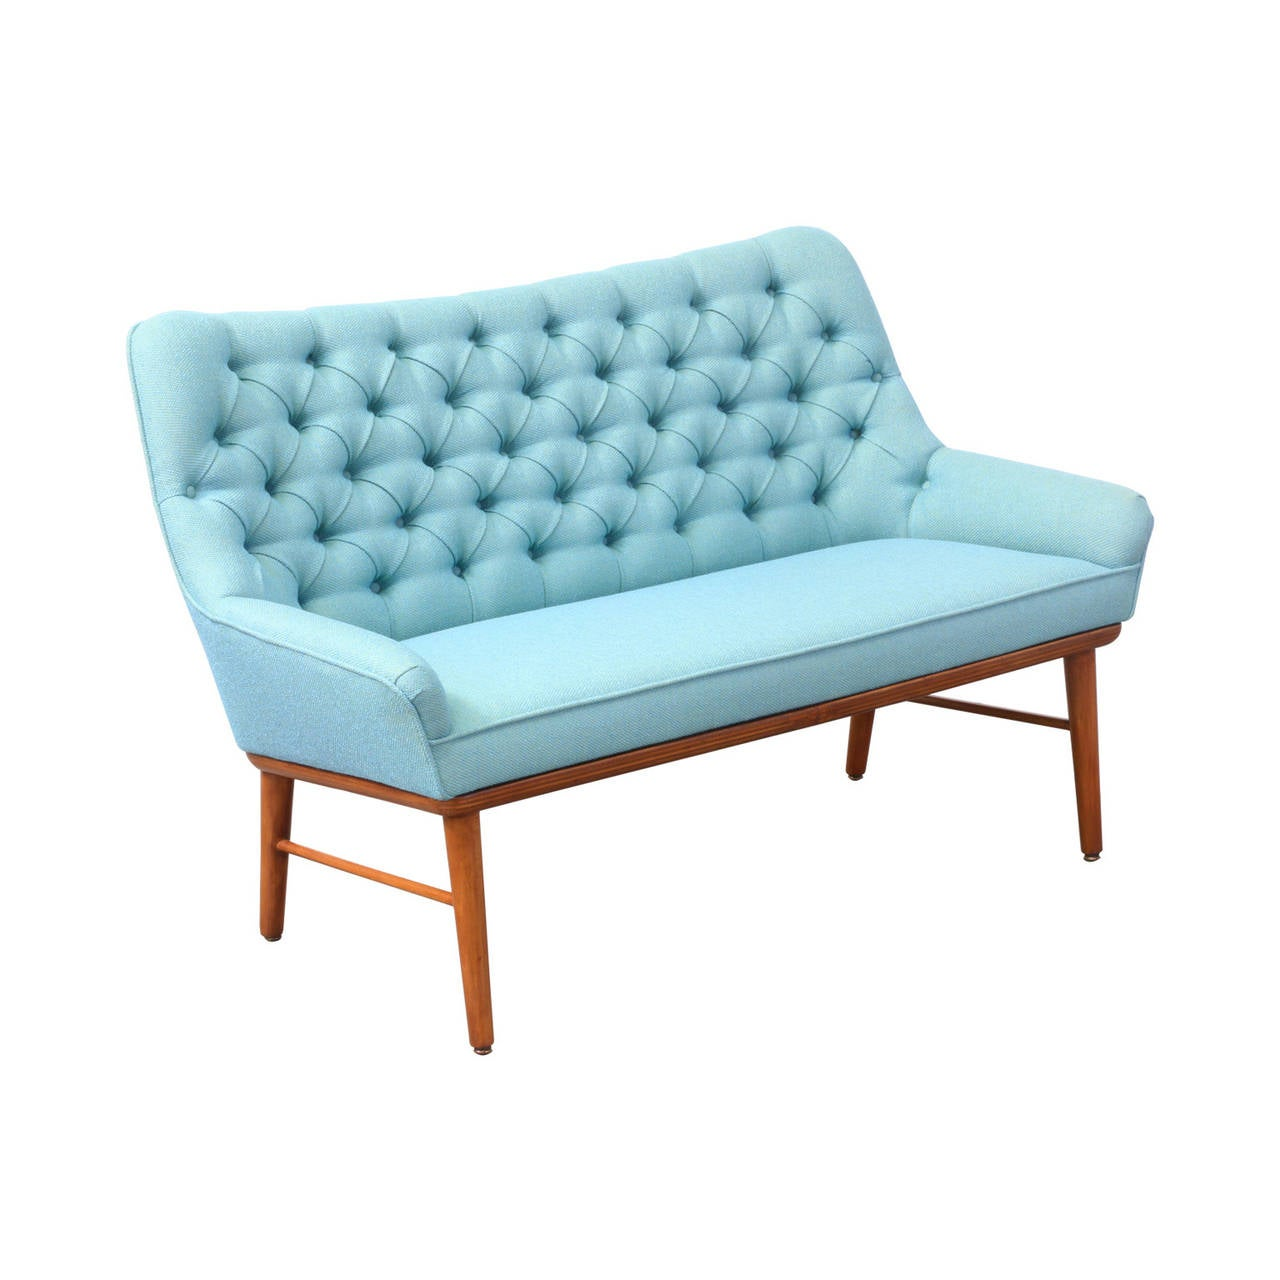 Mid century modern tufted loveseat for sale at 1stdibs for Modern loveseat